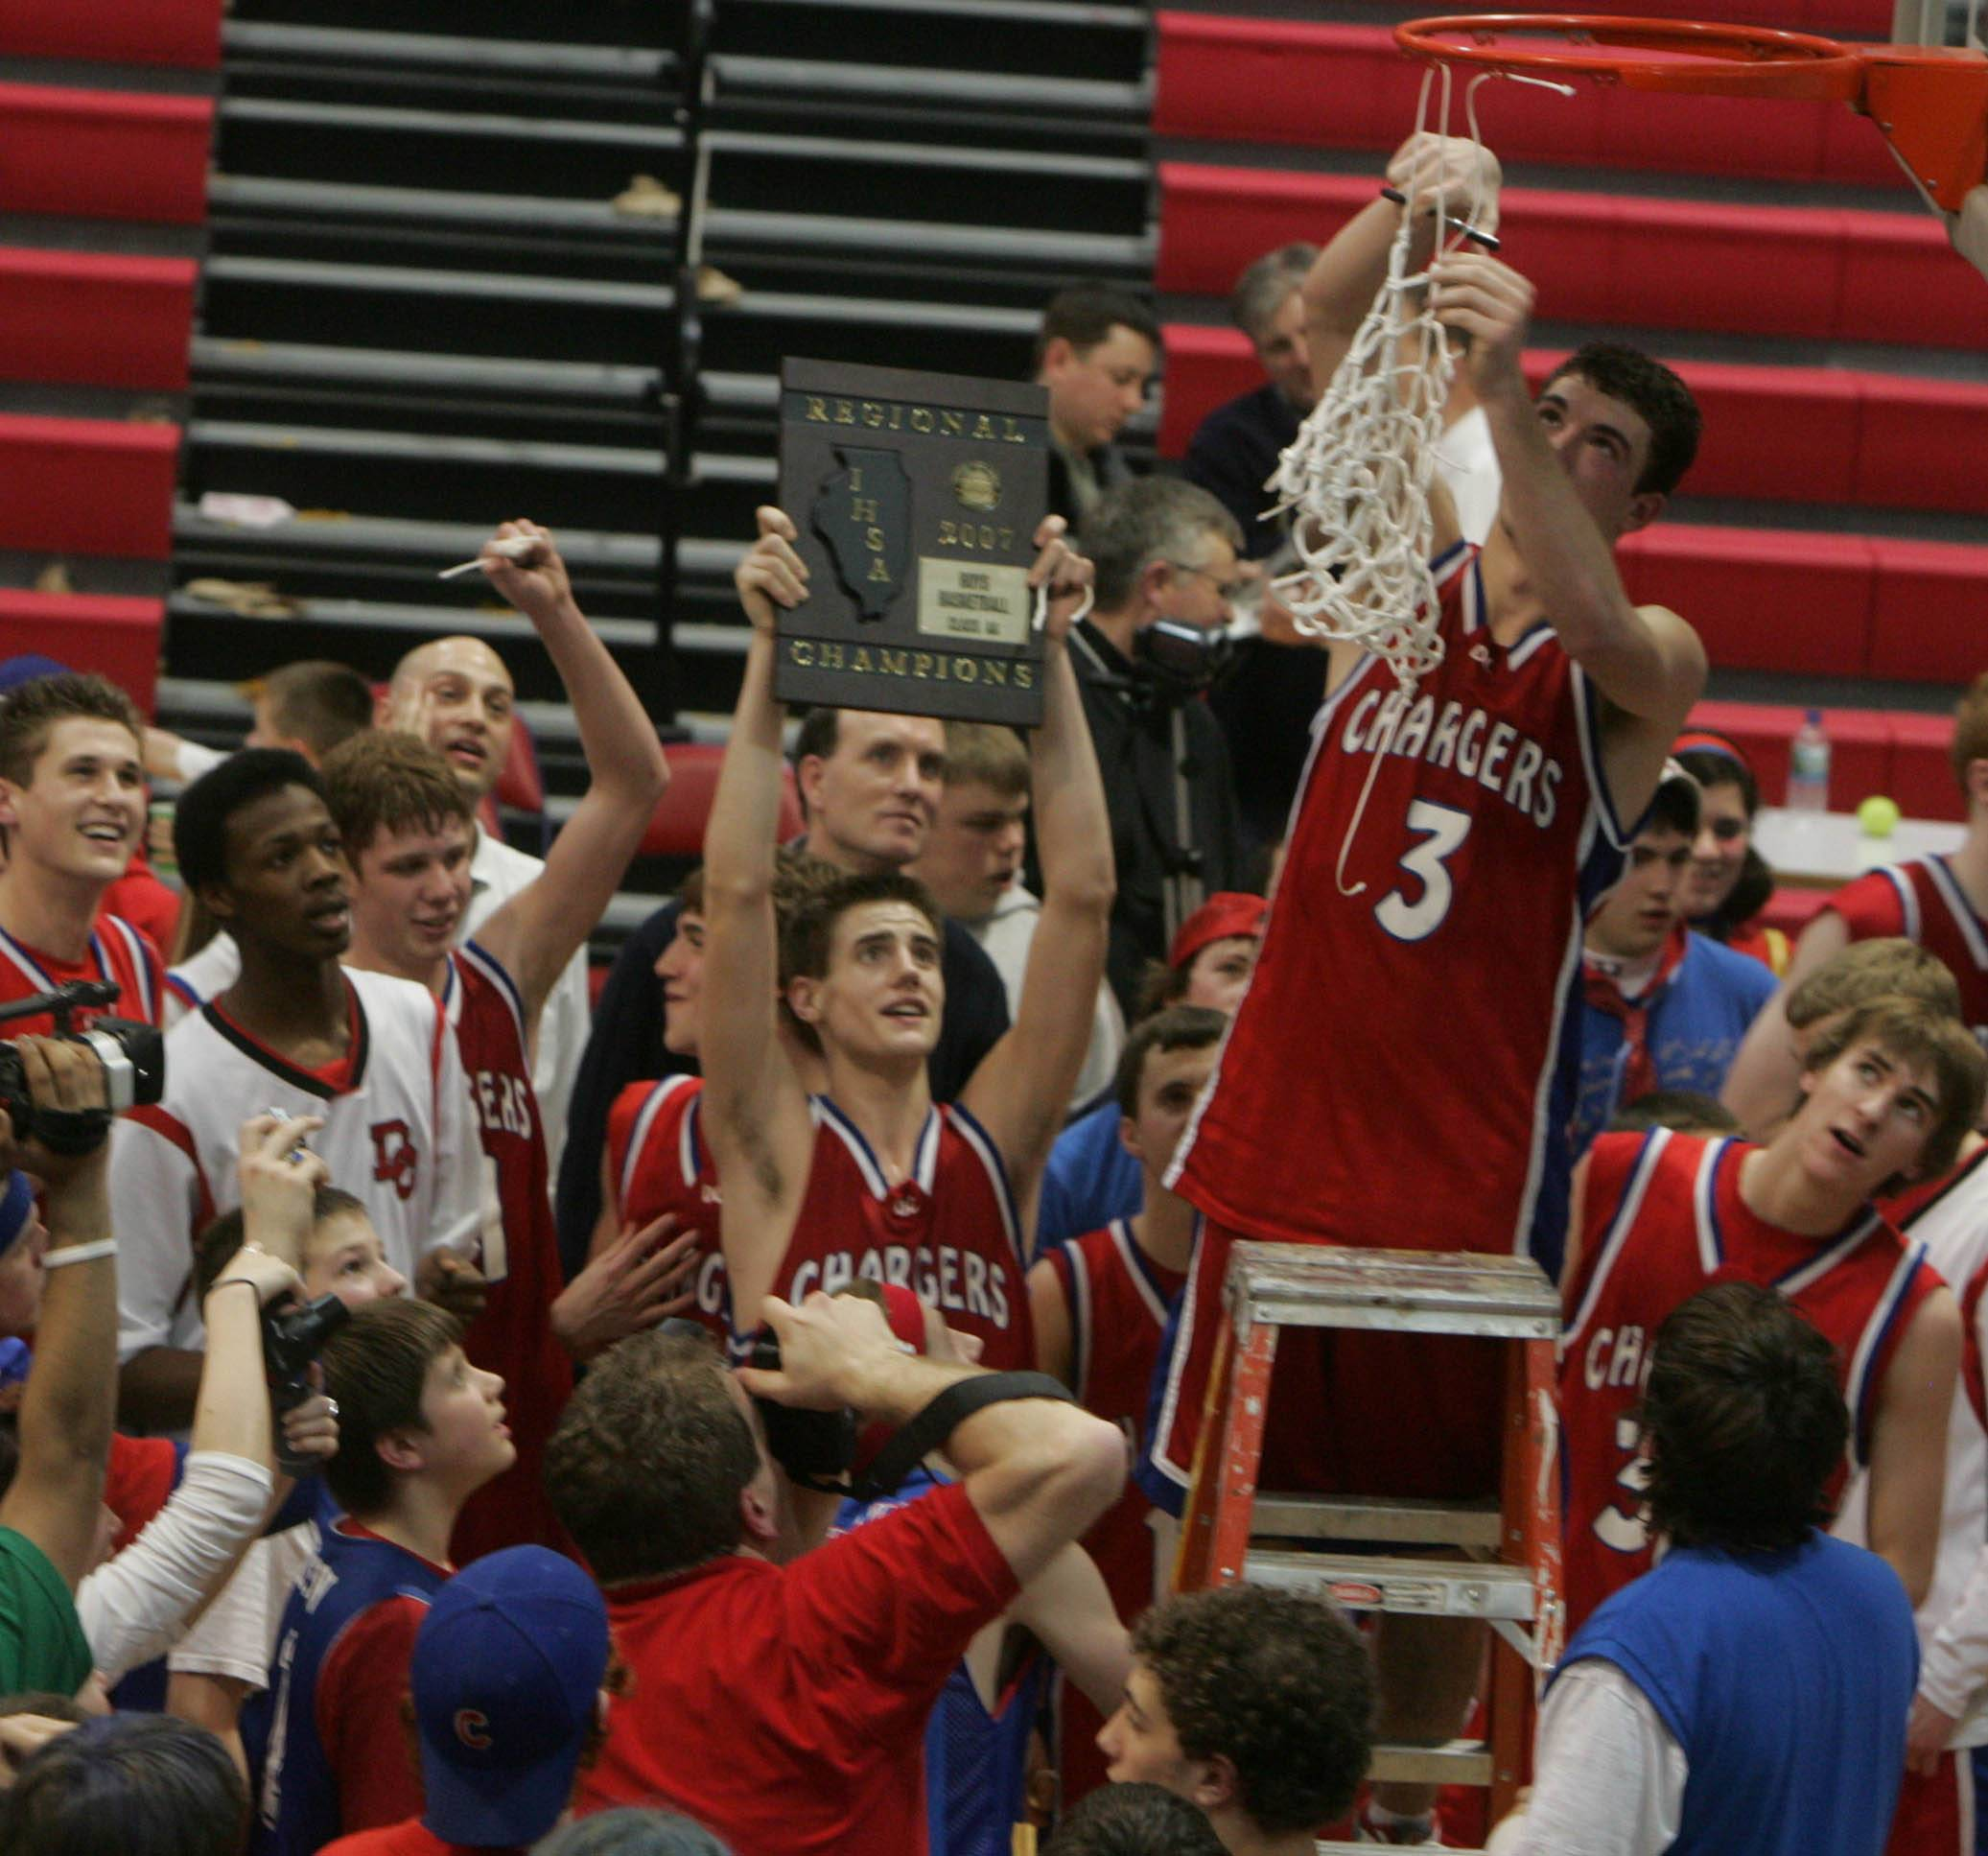 Dundee-Crown's Jeff Beck cuts down the net after a regional win in 2009. On Friday, the Chargers will celebrate the 10-year anniversary of that team that is the only one in school history to reach the state tournament.